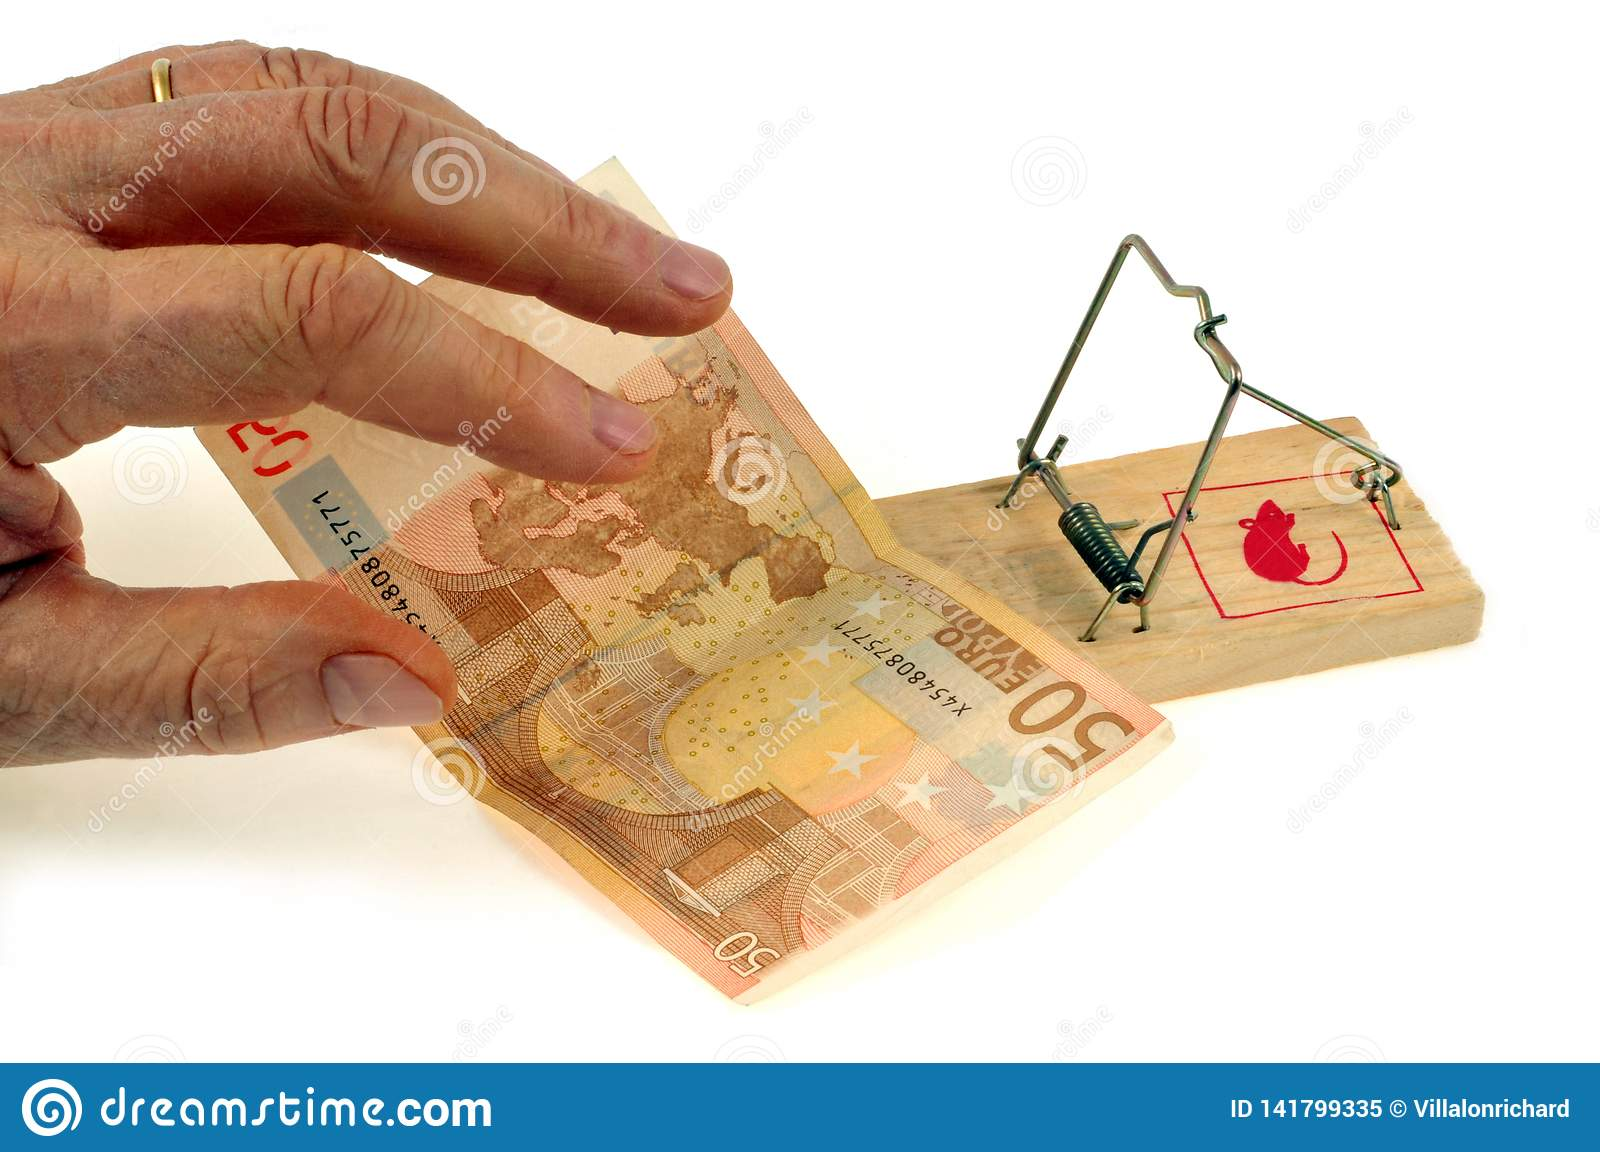 A fifty euro note placed on a mousetrap